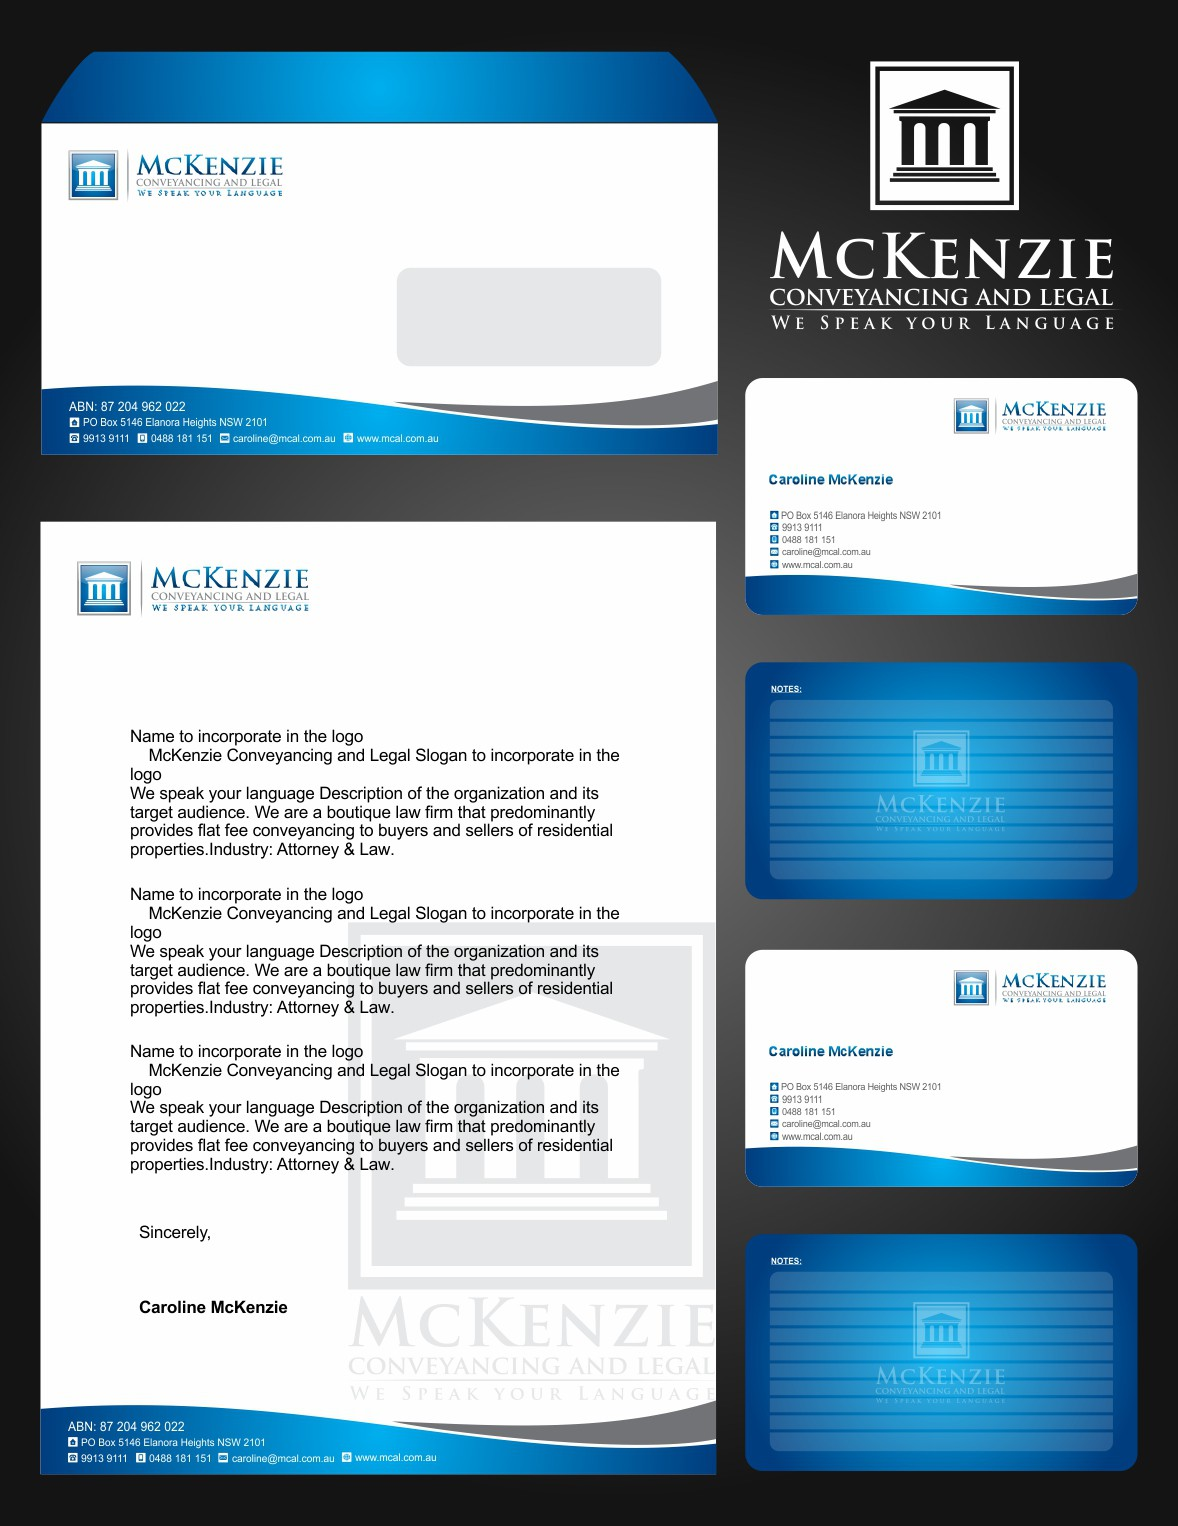 Create the next logo for McKenzie Conveyancing and Legal